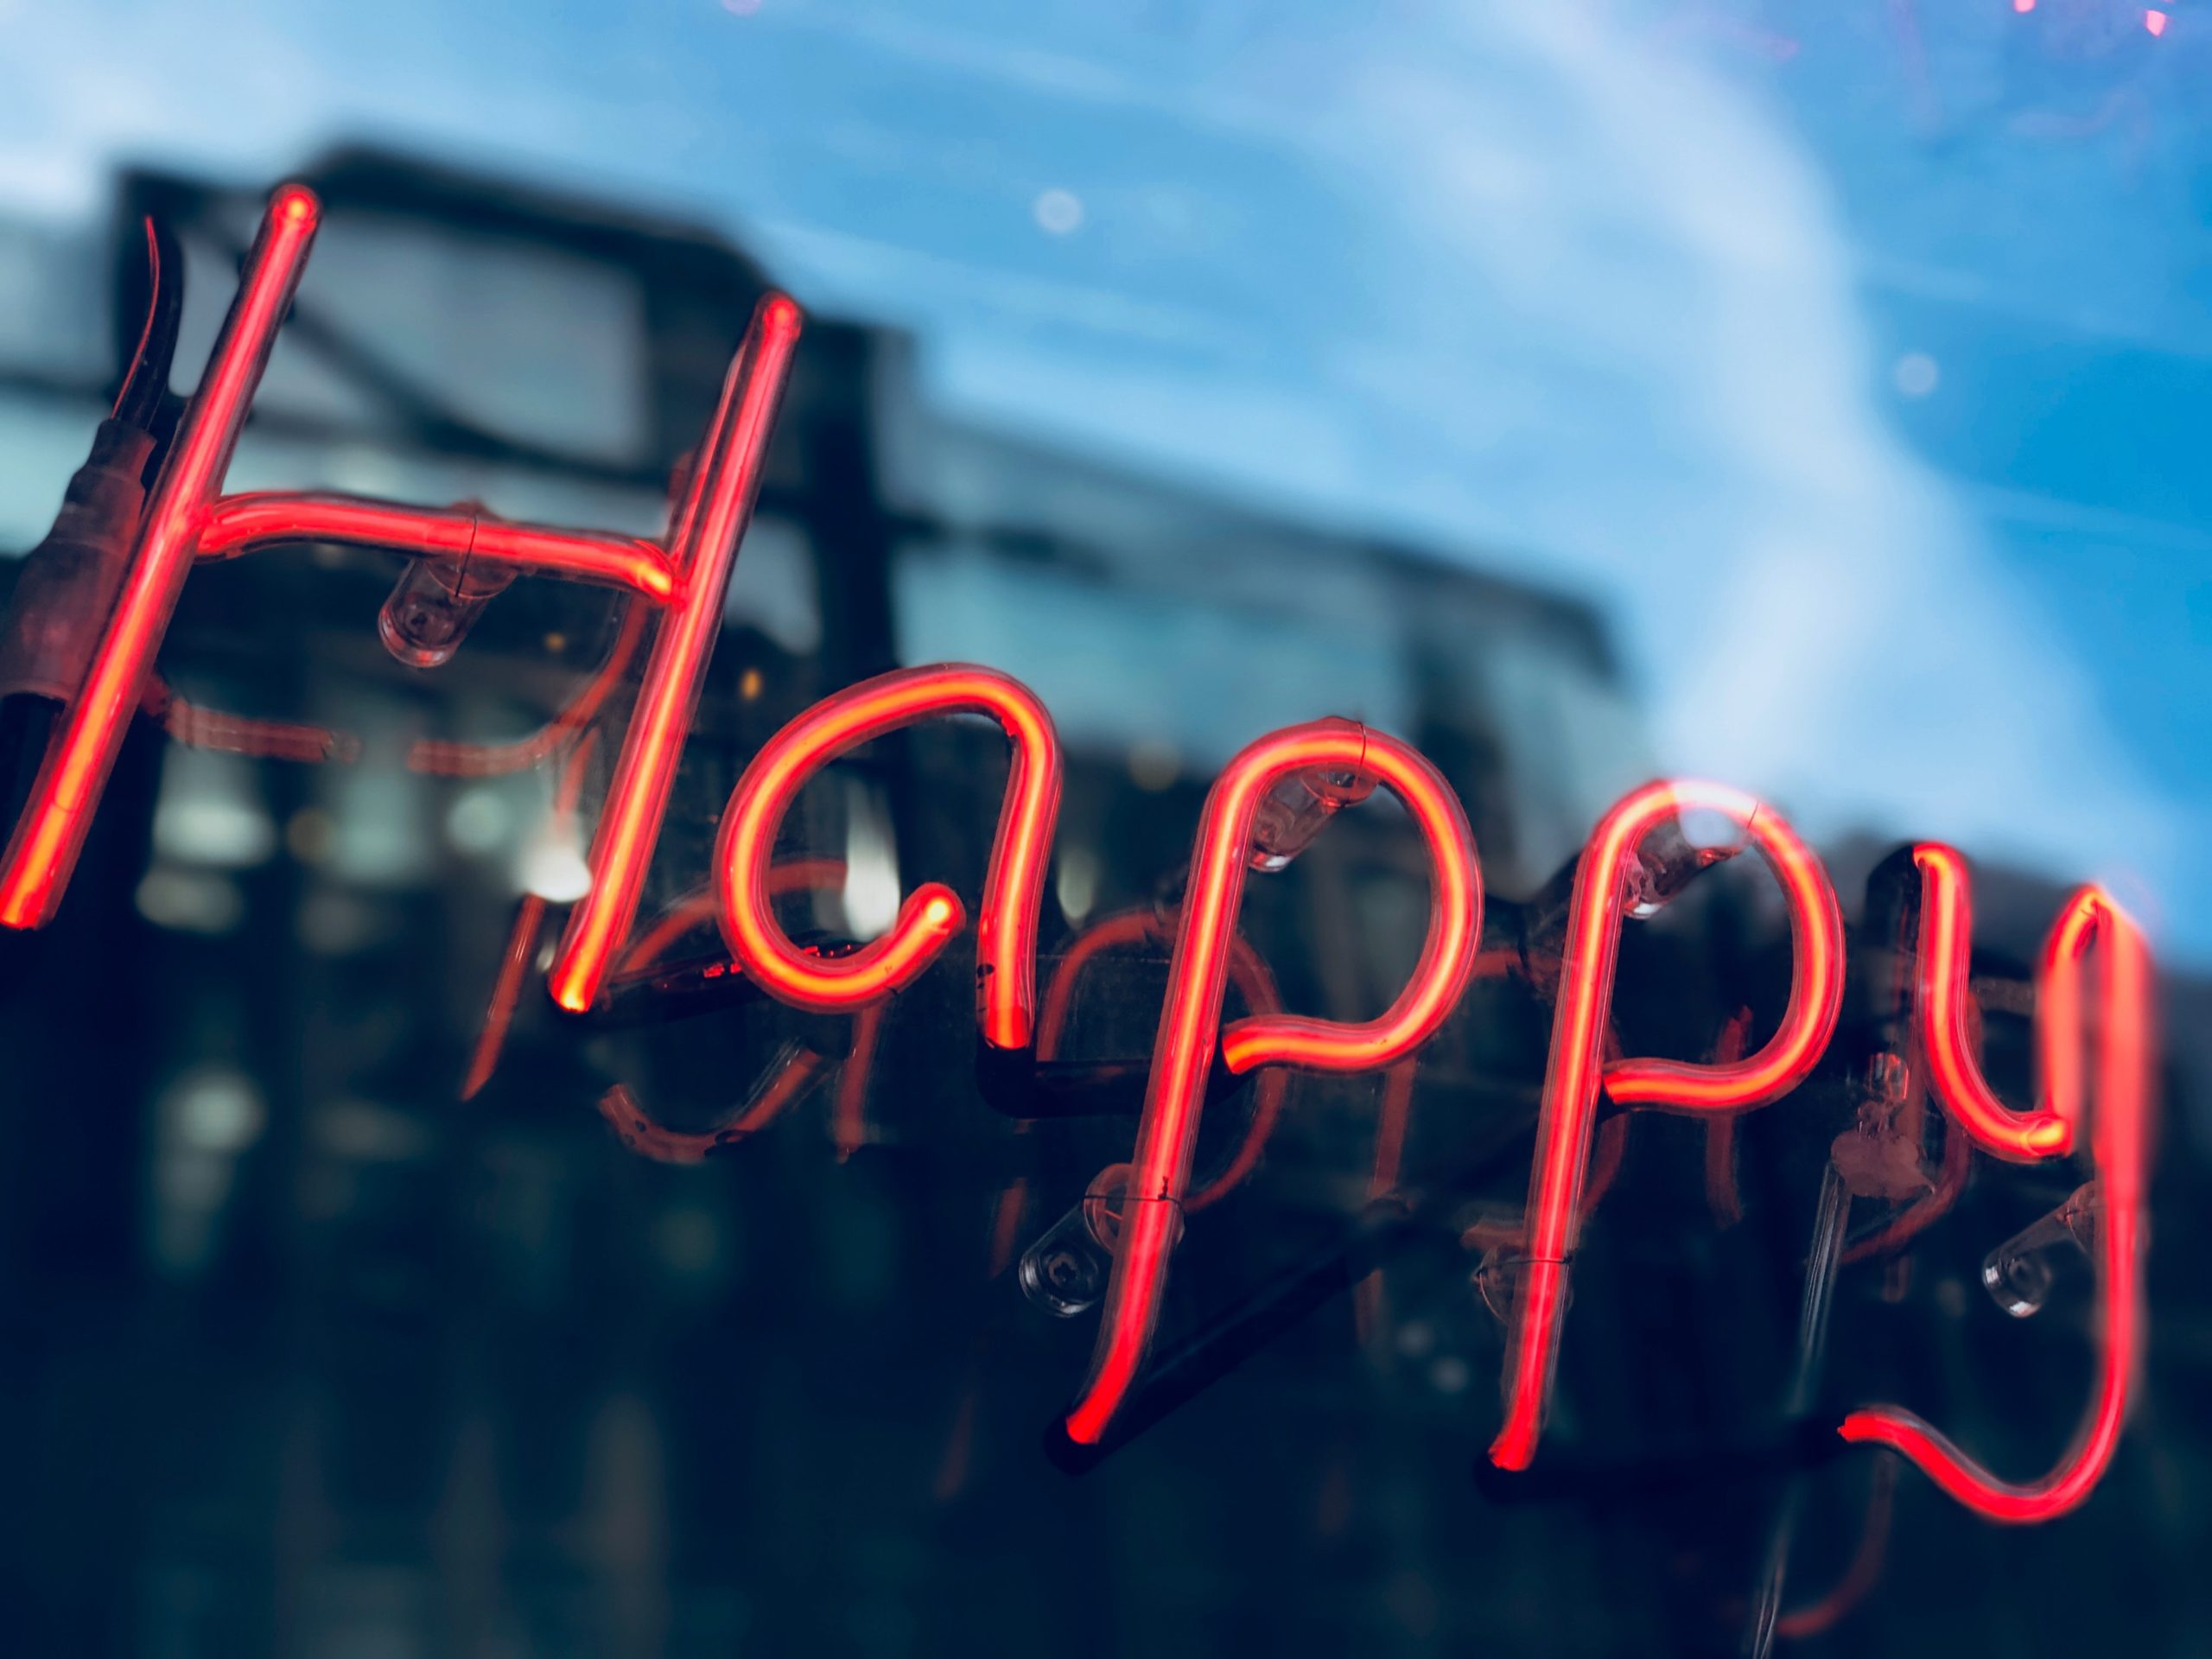 A red neon sign says Happy